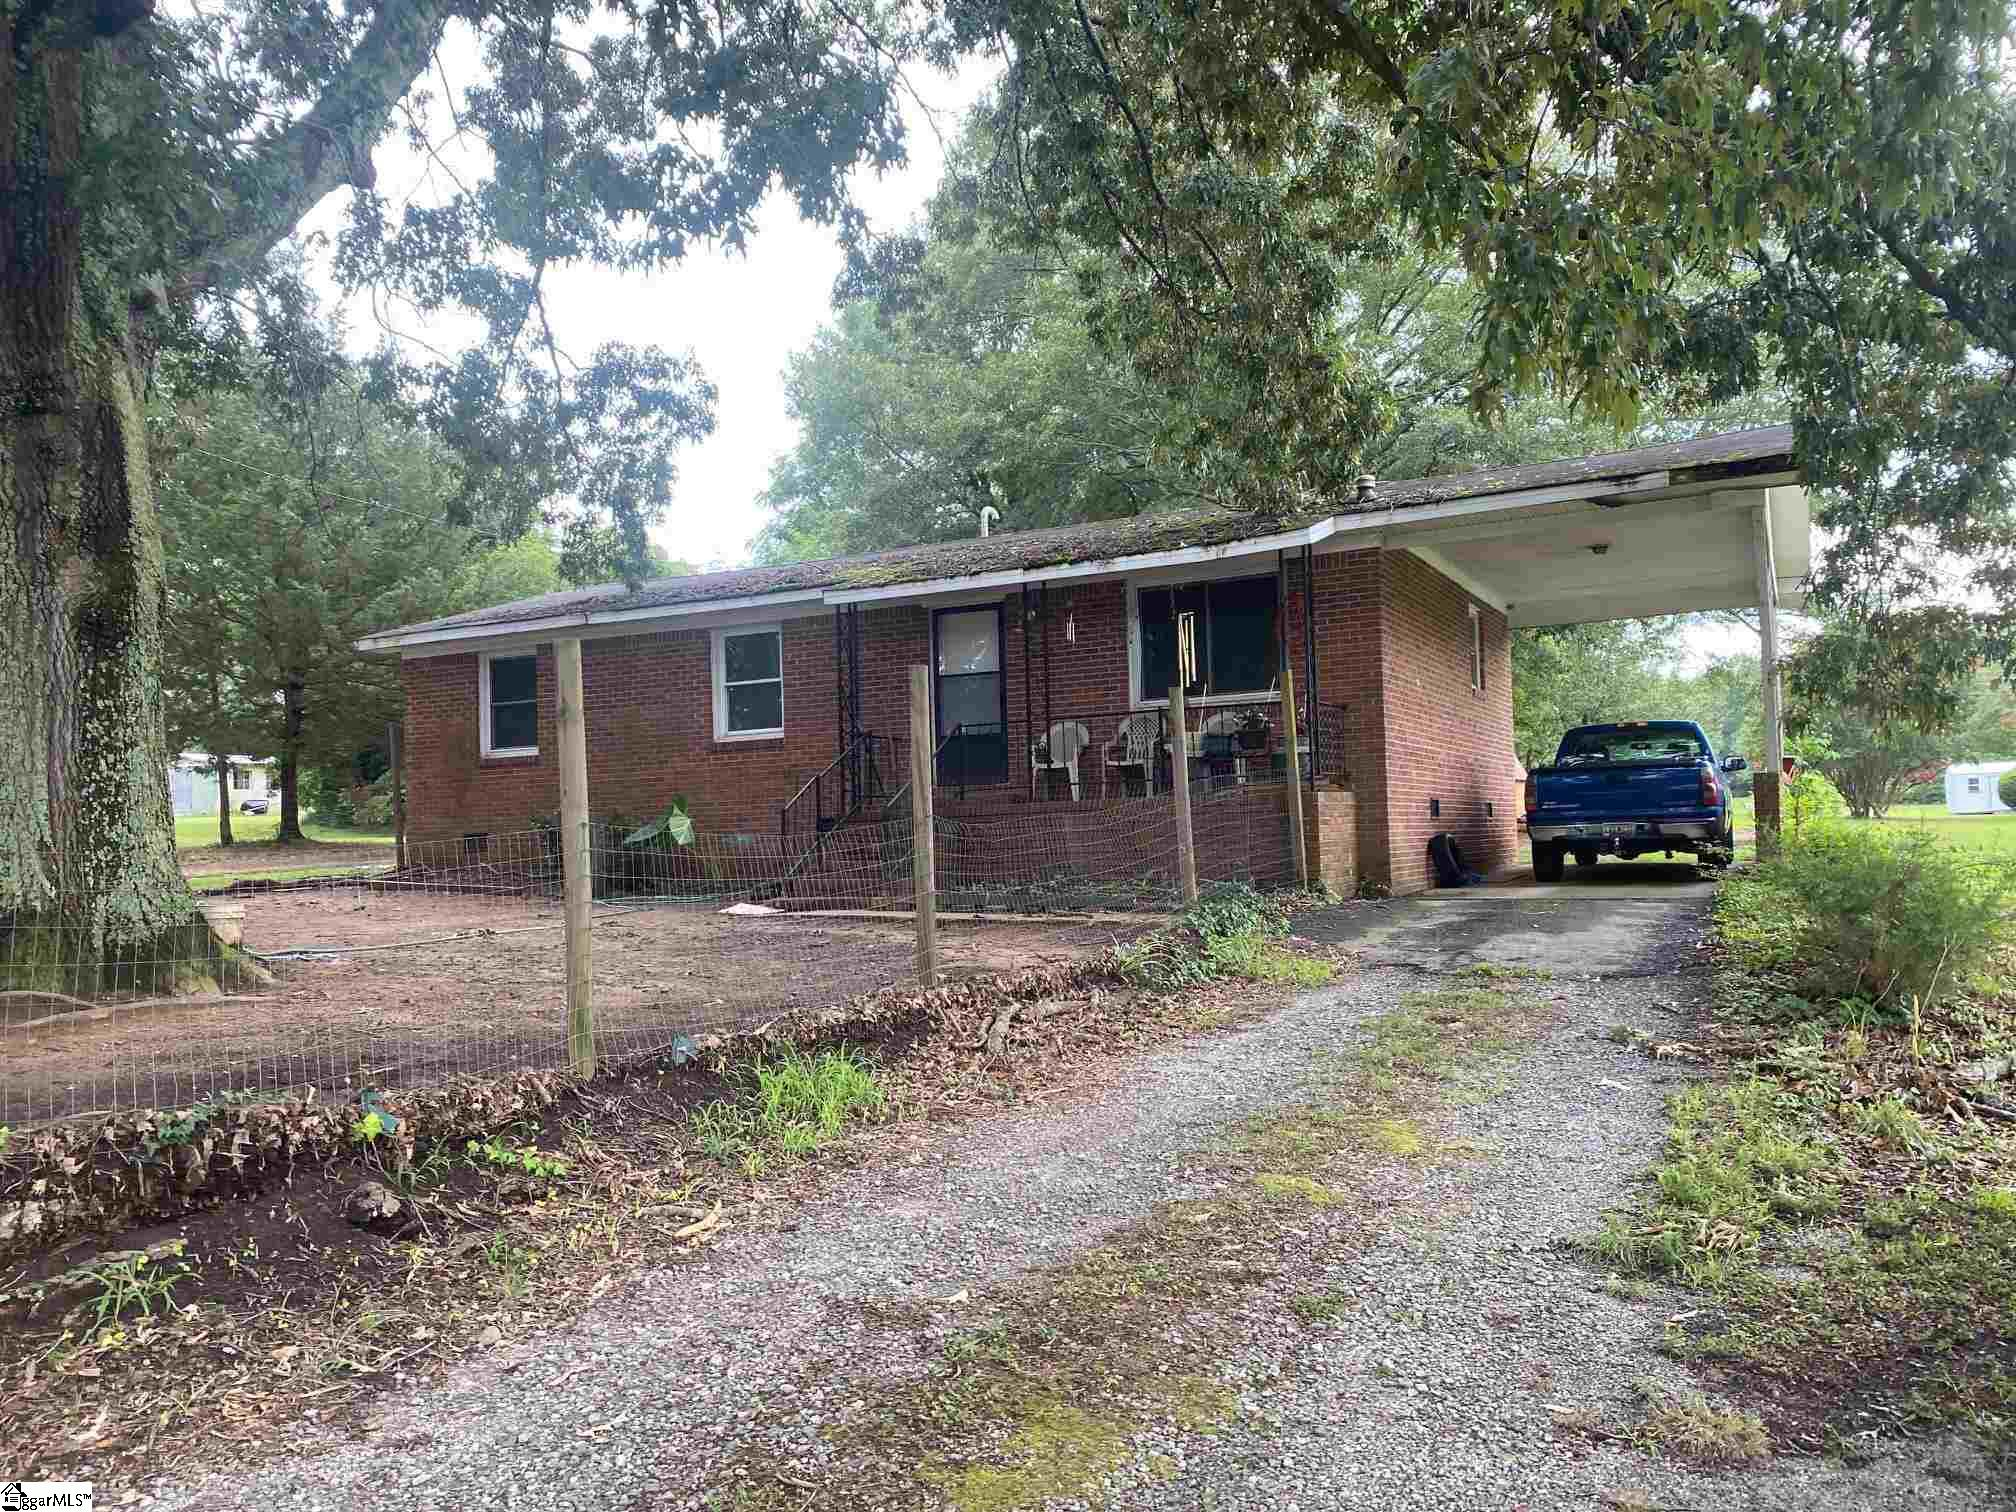 7144 South Old Laurens Road Gray Court, SC 29645-5810